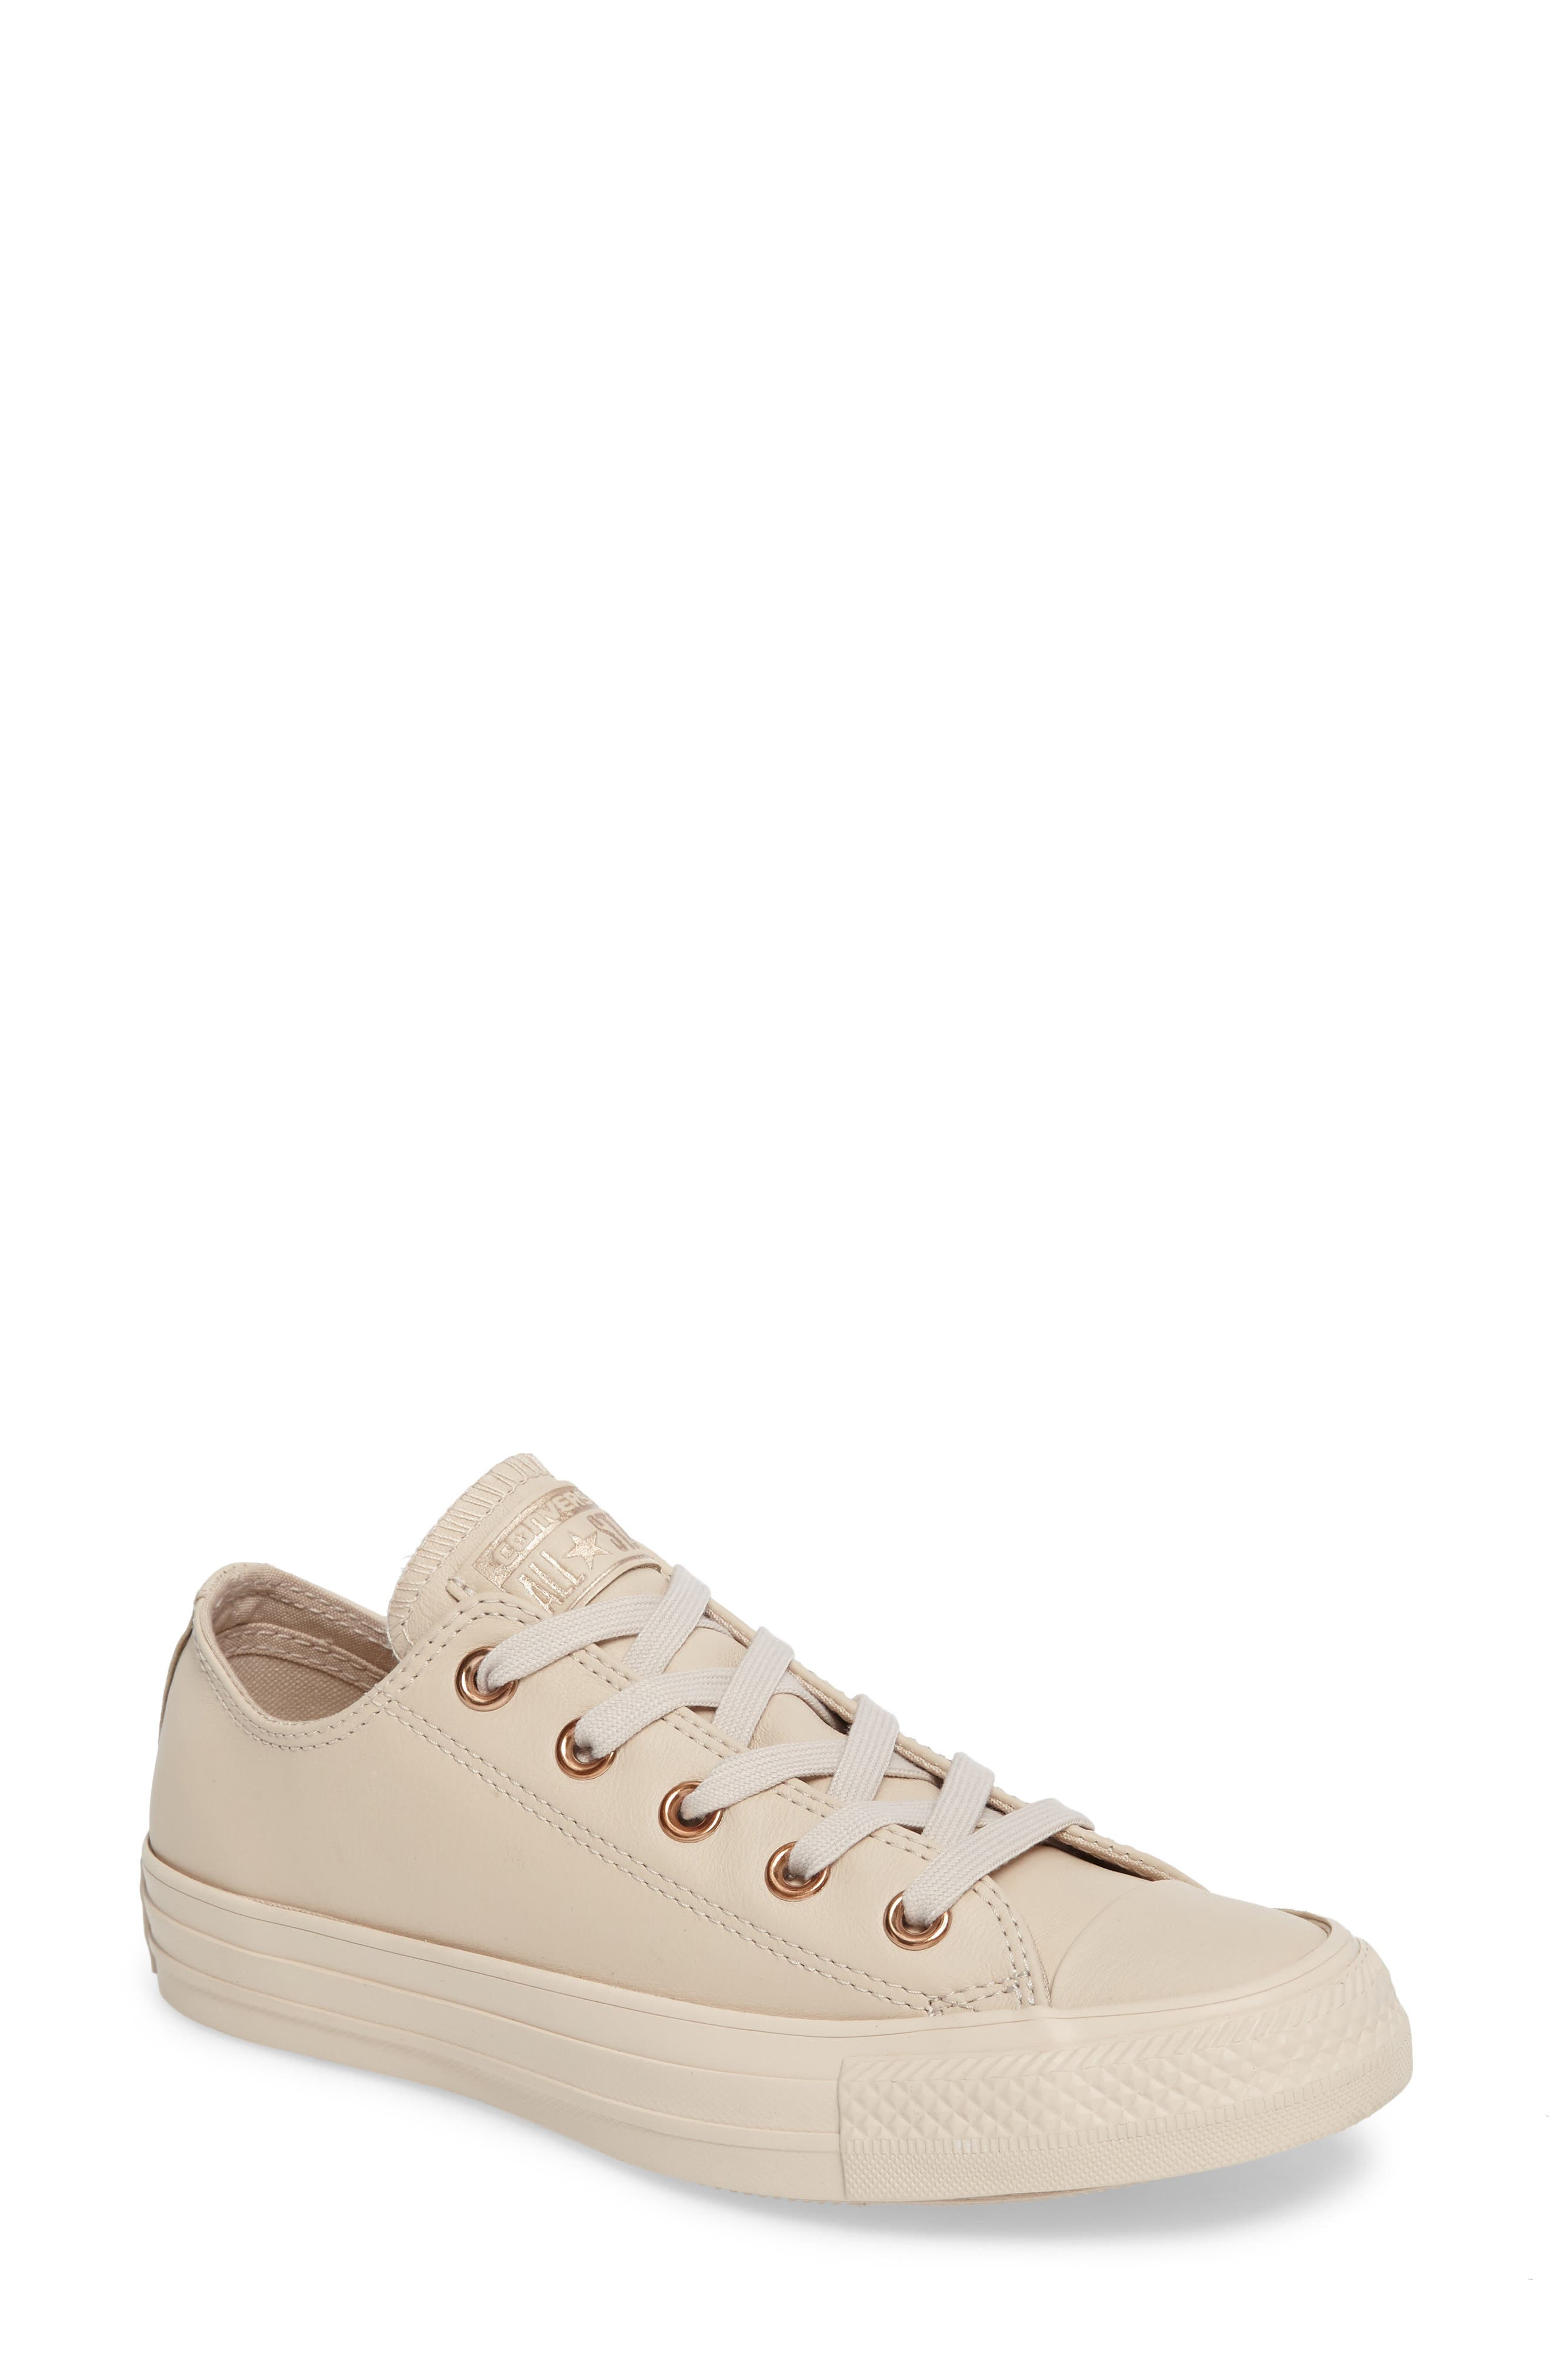 Chuck Taylor<sup>®</sup> All Star<sup>®</sup> Low Sneaker,                             Main thumbnail 1, color,